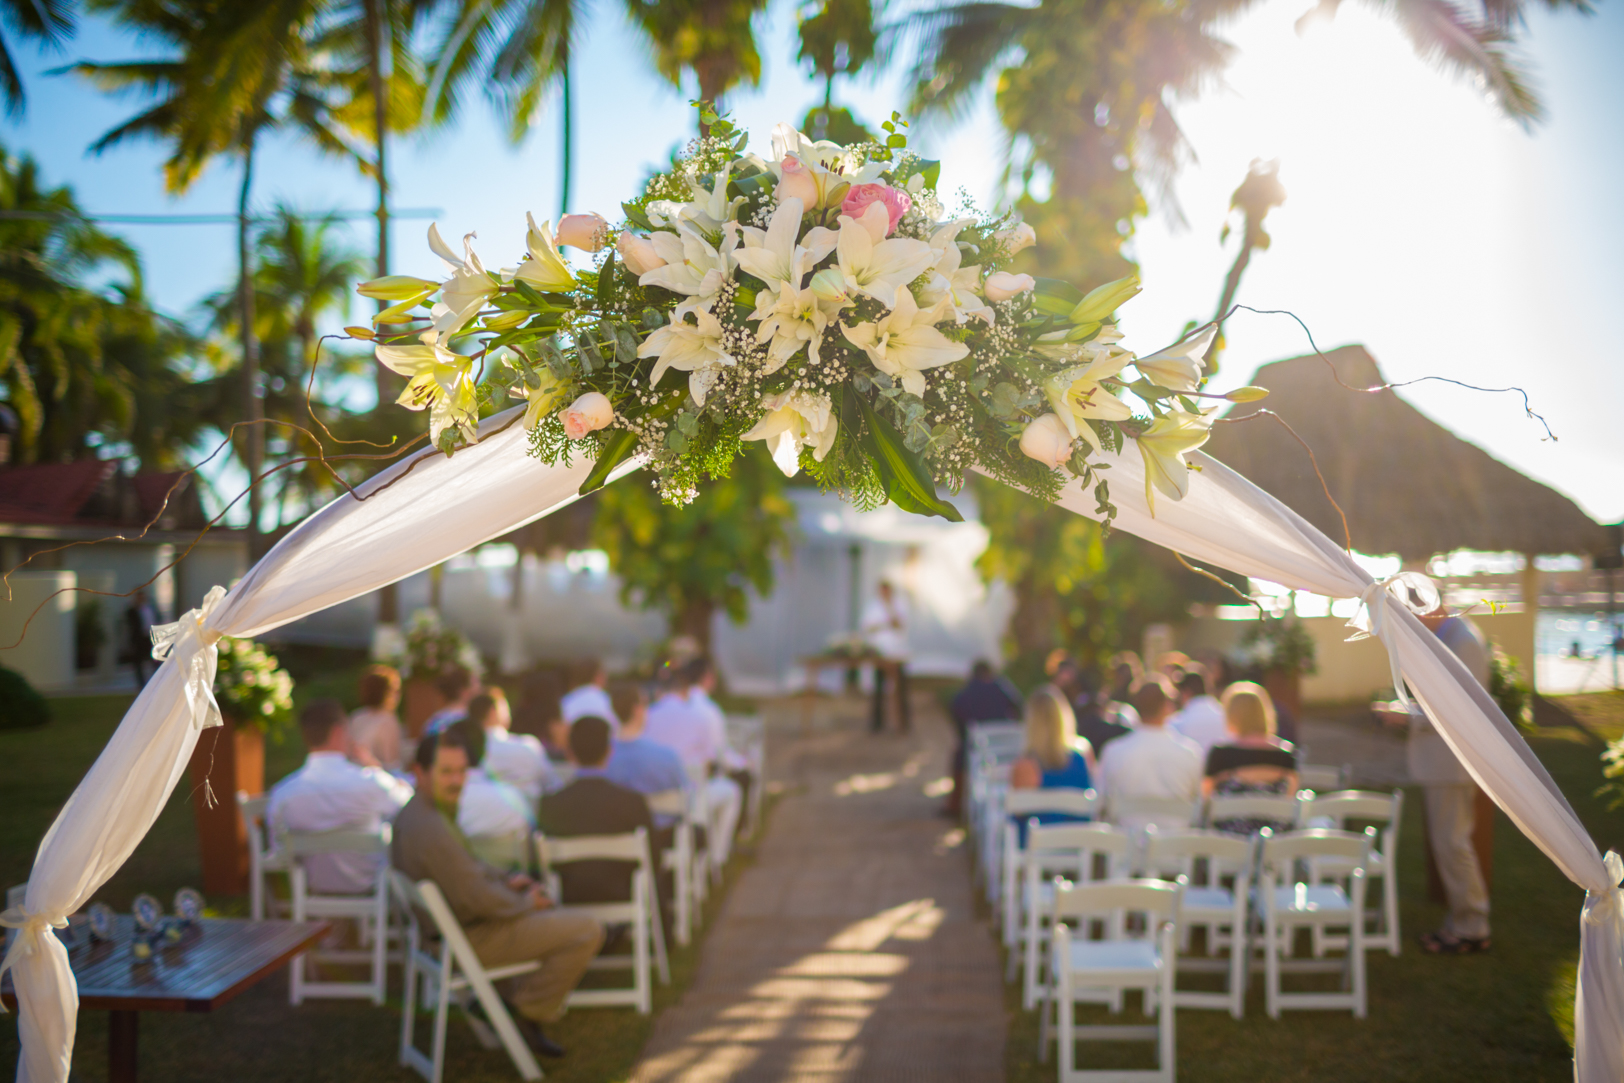 Sunscape Dorado Pacifico Ixtapa destination wedding decorations